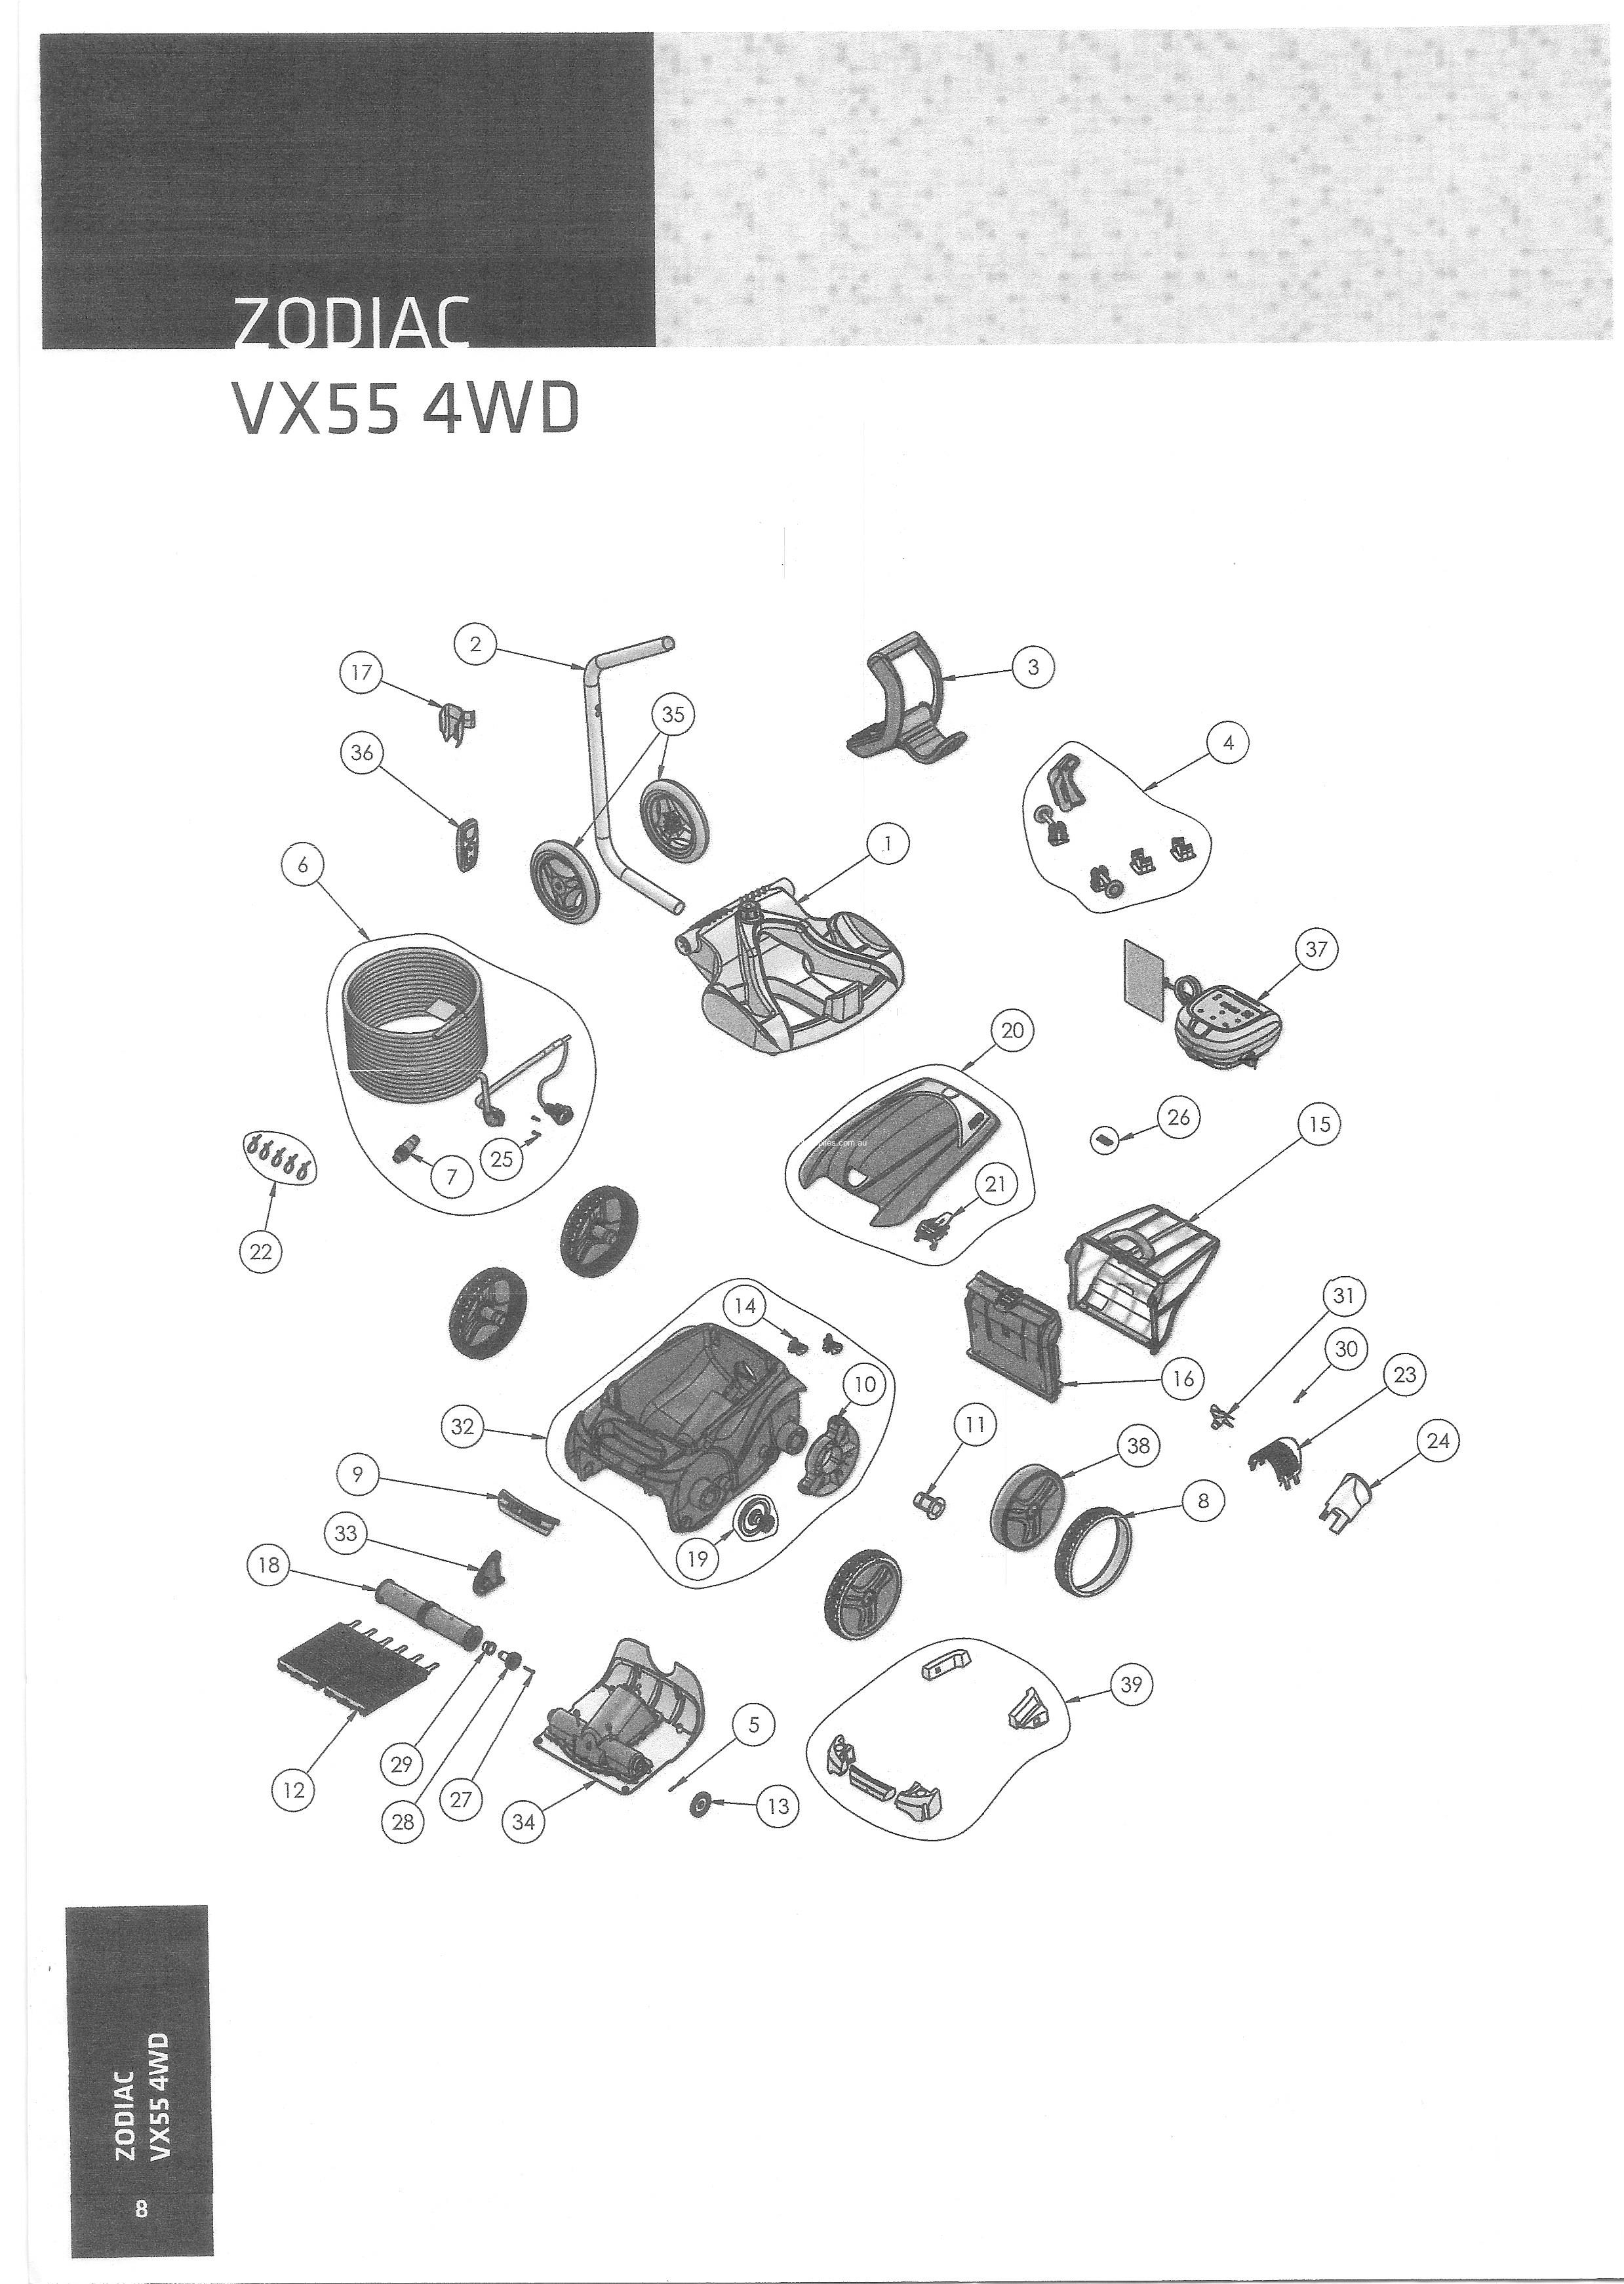 Zodiac Vx55 4wd V4 4wd Genuine Spare Parts Quot Free Shipping Quot